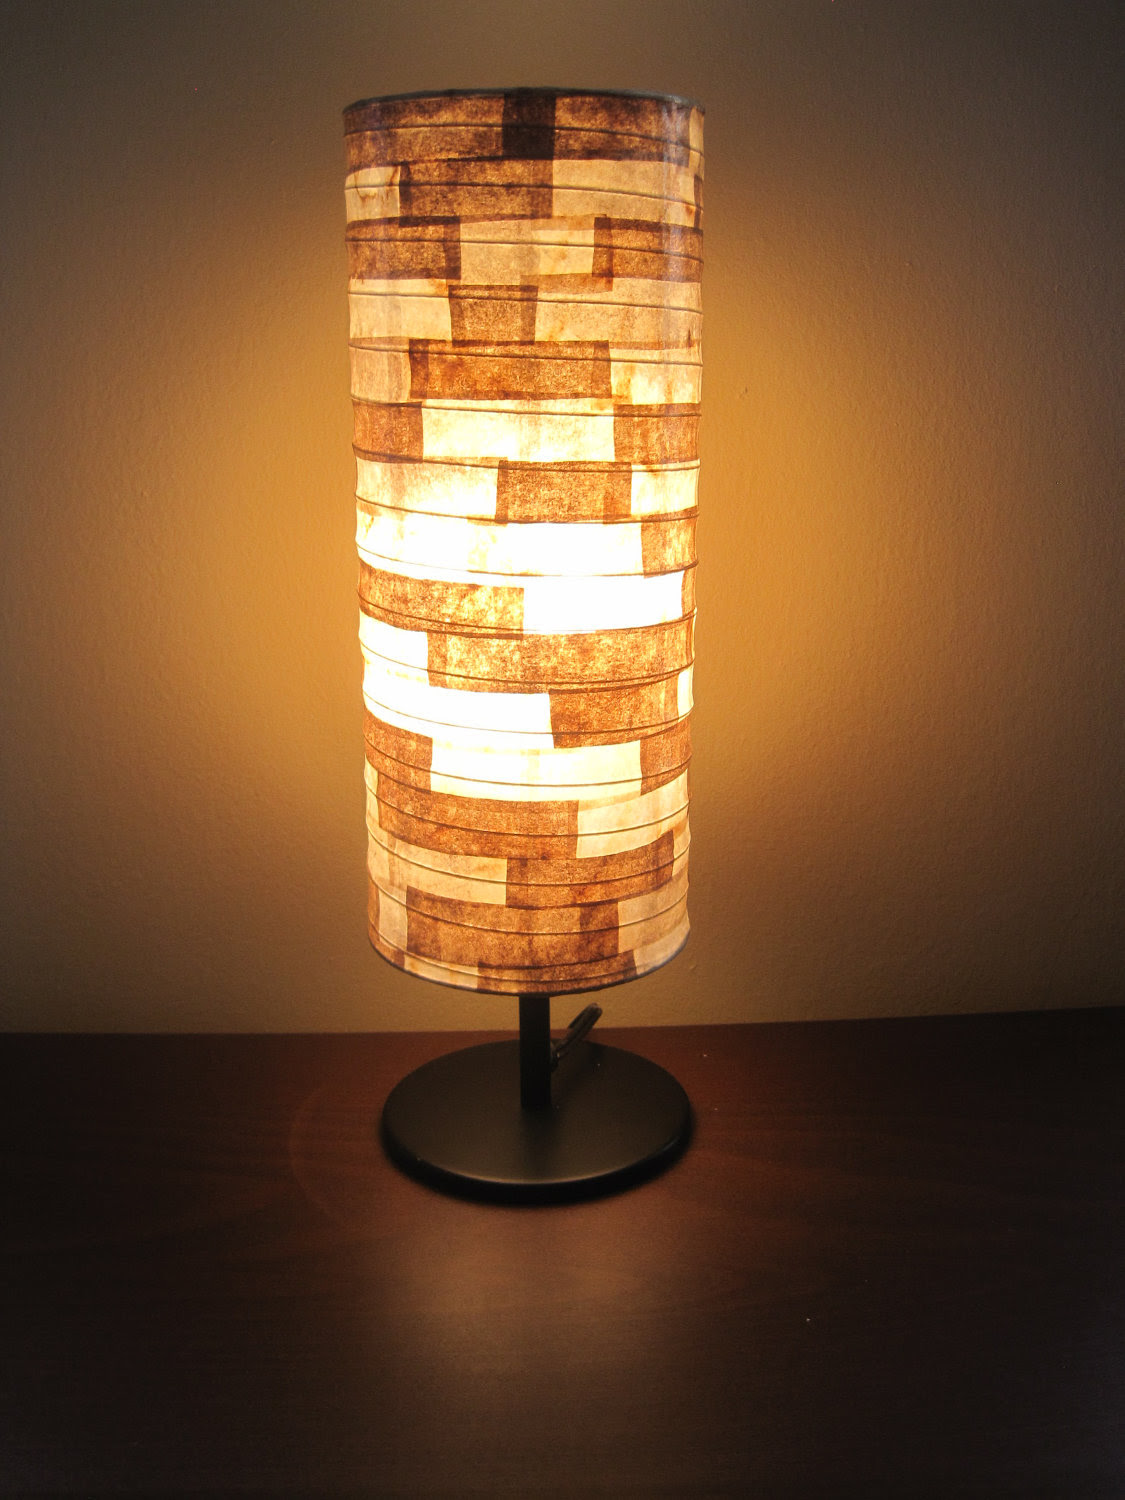 best and favorable unusual table lamp design in tube style in golden light on wooden table